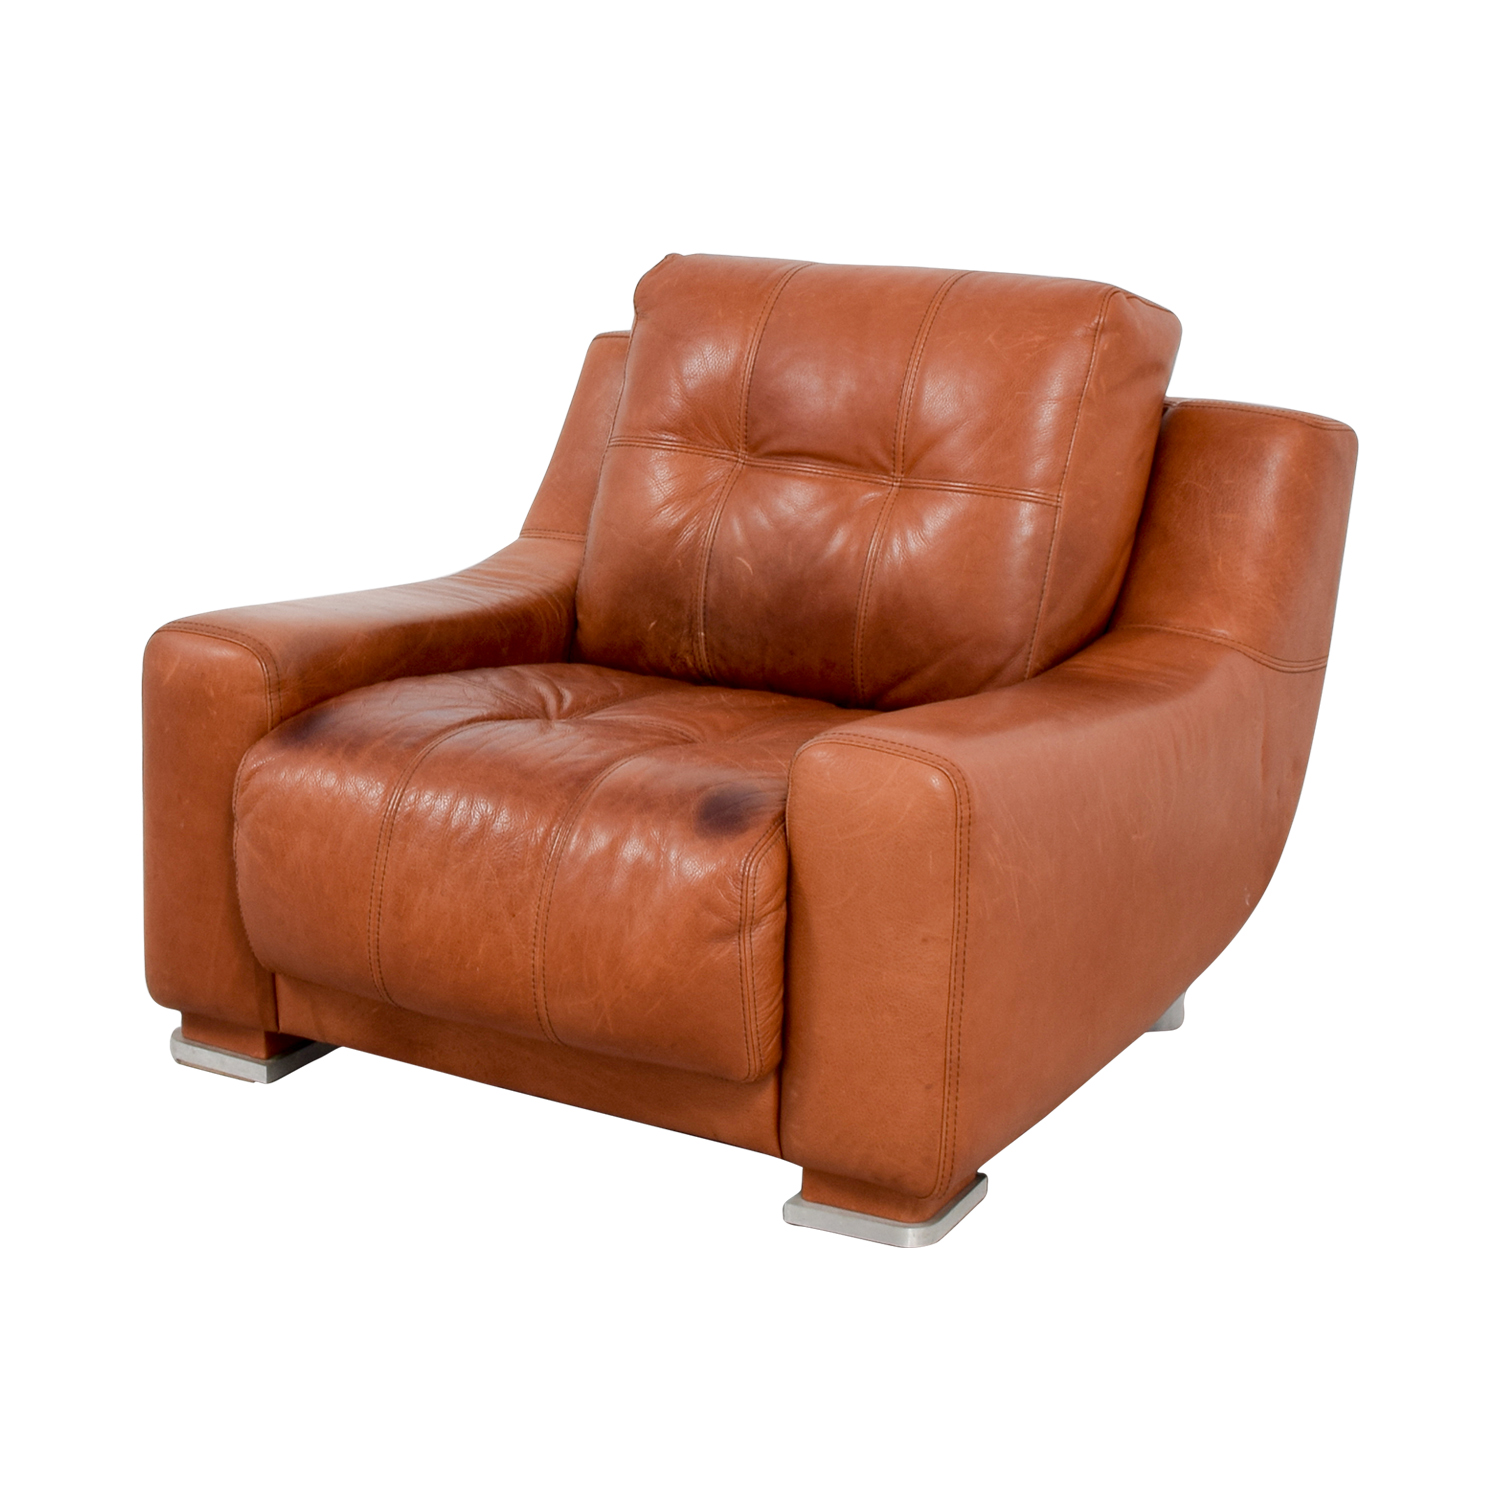 Luxury Tan Leather Accent Chair